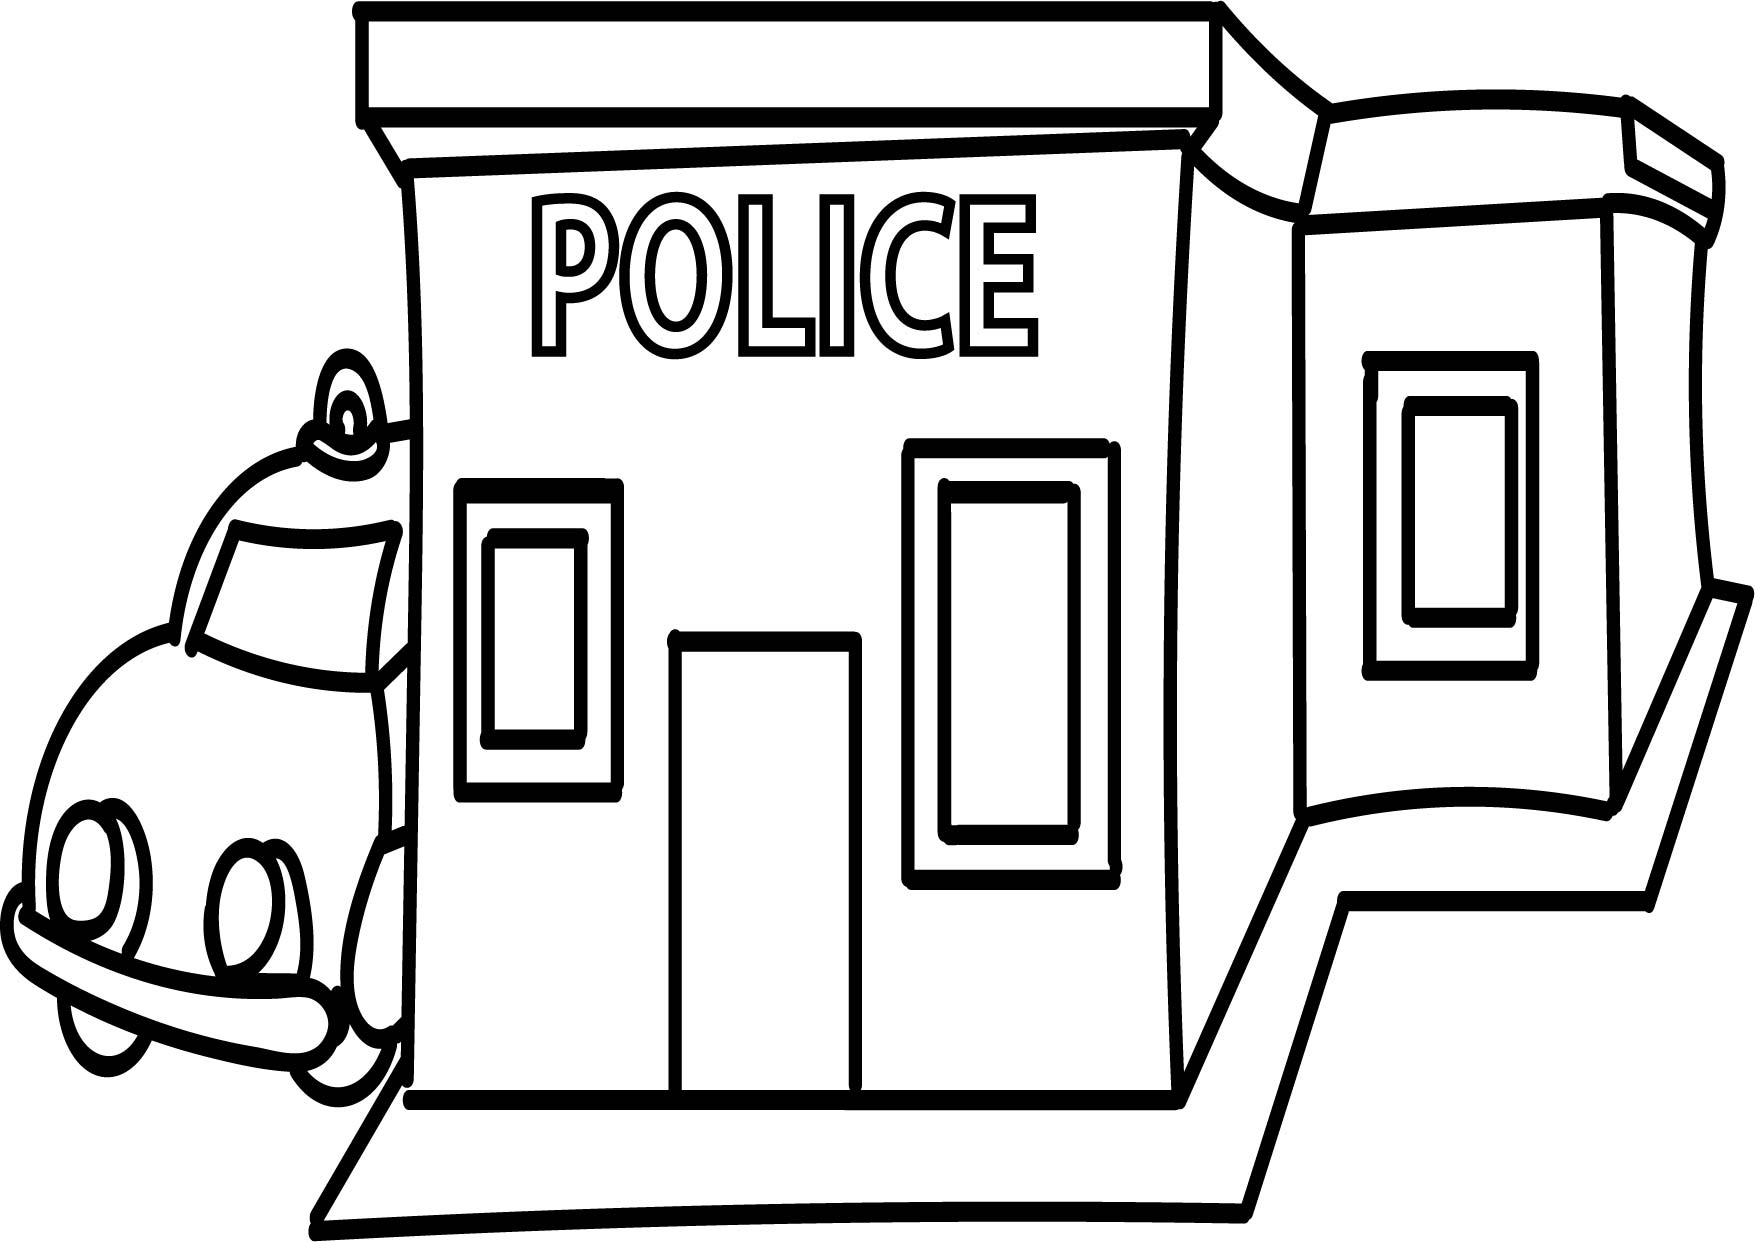 Police office clipart black and white vector freeuse stock Police Clipart Black And White | Free download best Police ... vector freeuse stock